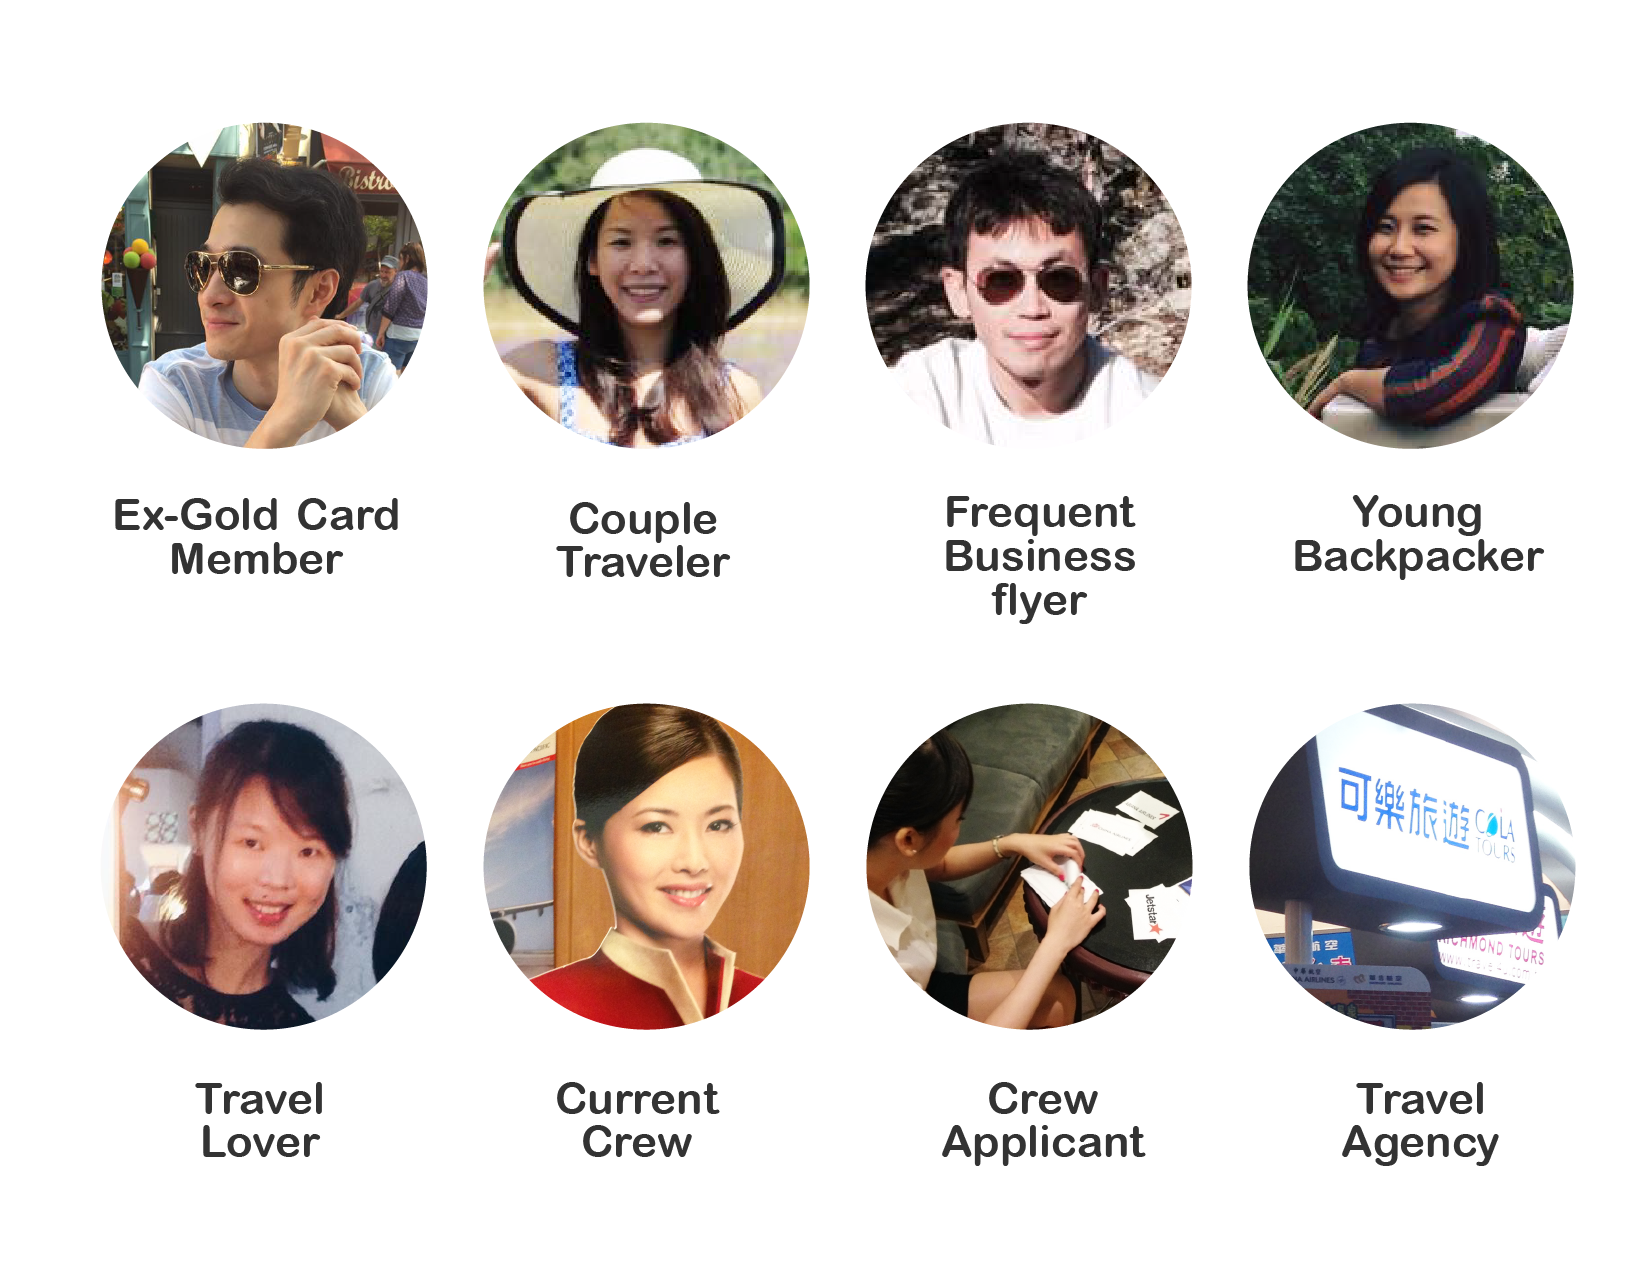 Conducted in-depth interview with users, crew and travel agency